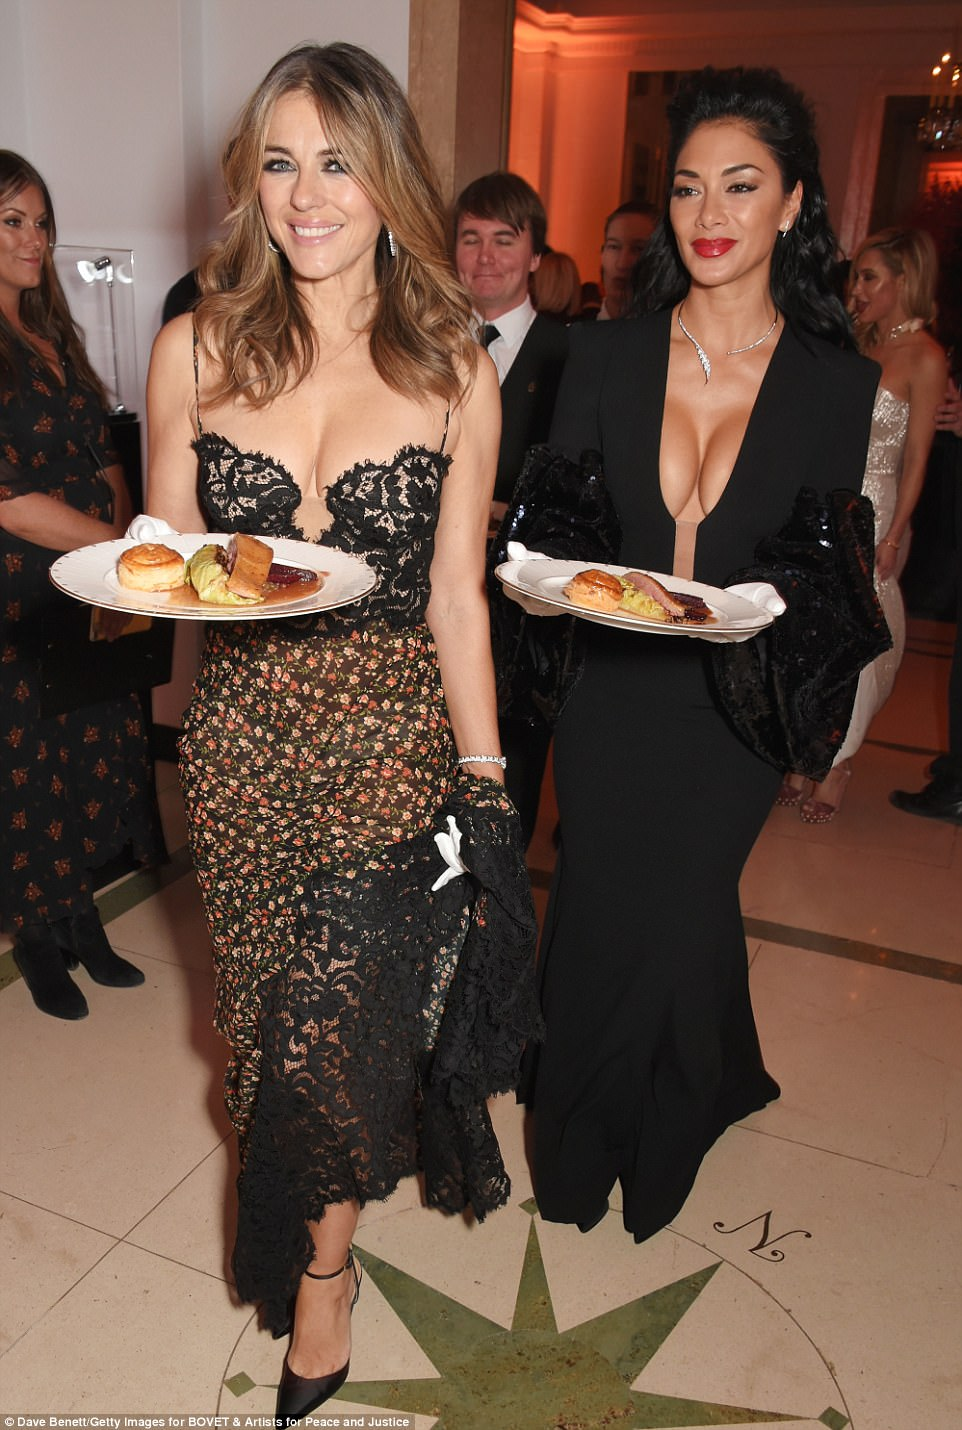 Nicole Scherzinger - Página 9 46E3FD1200000578-5137893-Here_come_the_girls_The_pair_flashed_matching_grins_as_they_sash-m-21_1512169968922